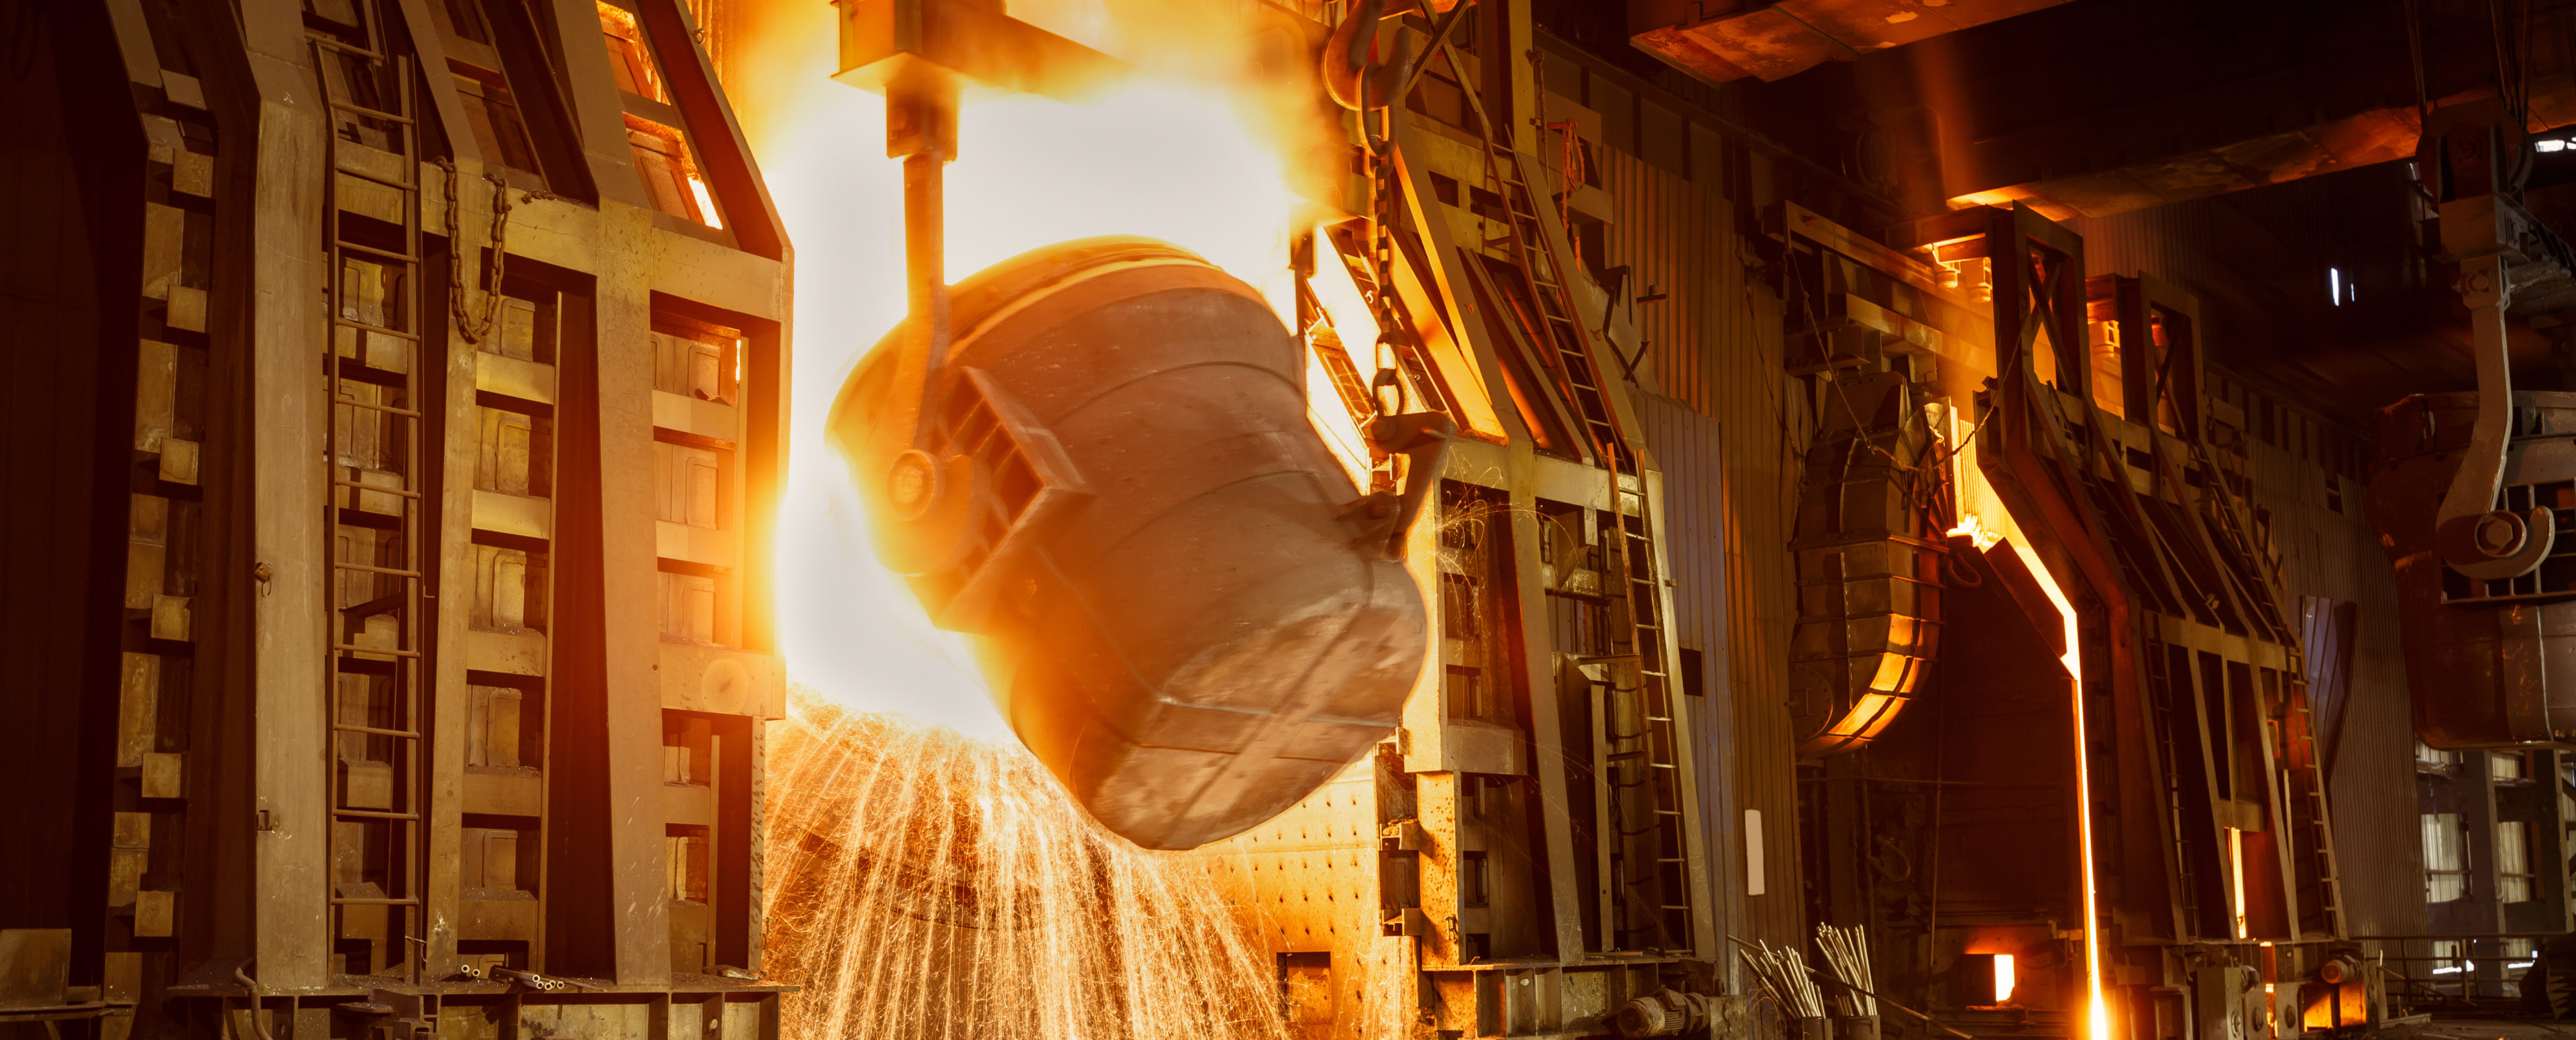 Metal smelting furnace in steel mills